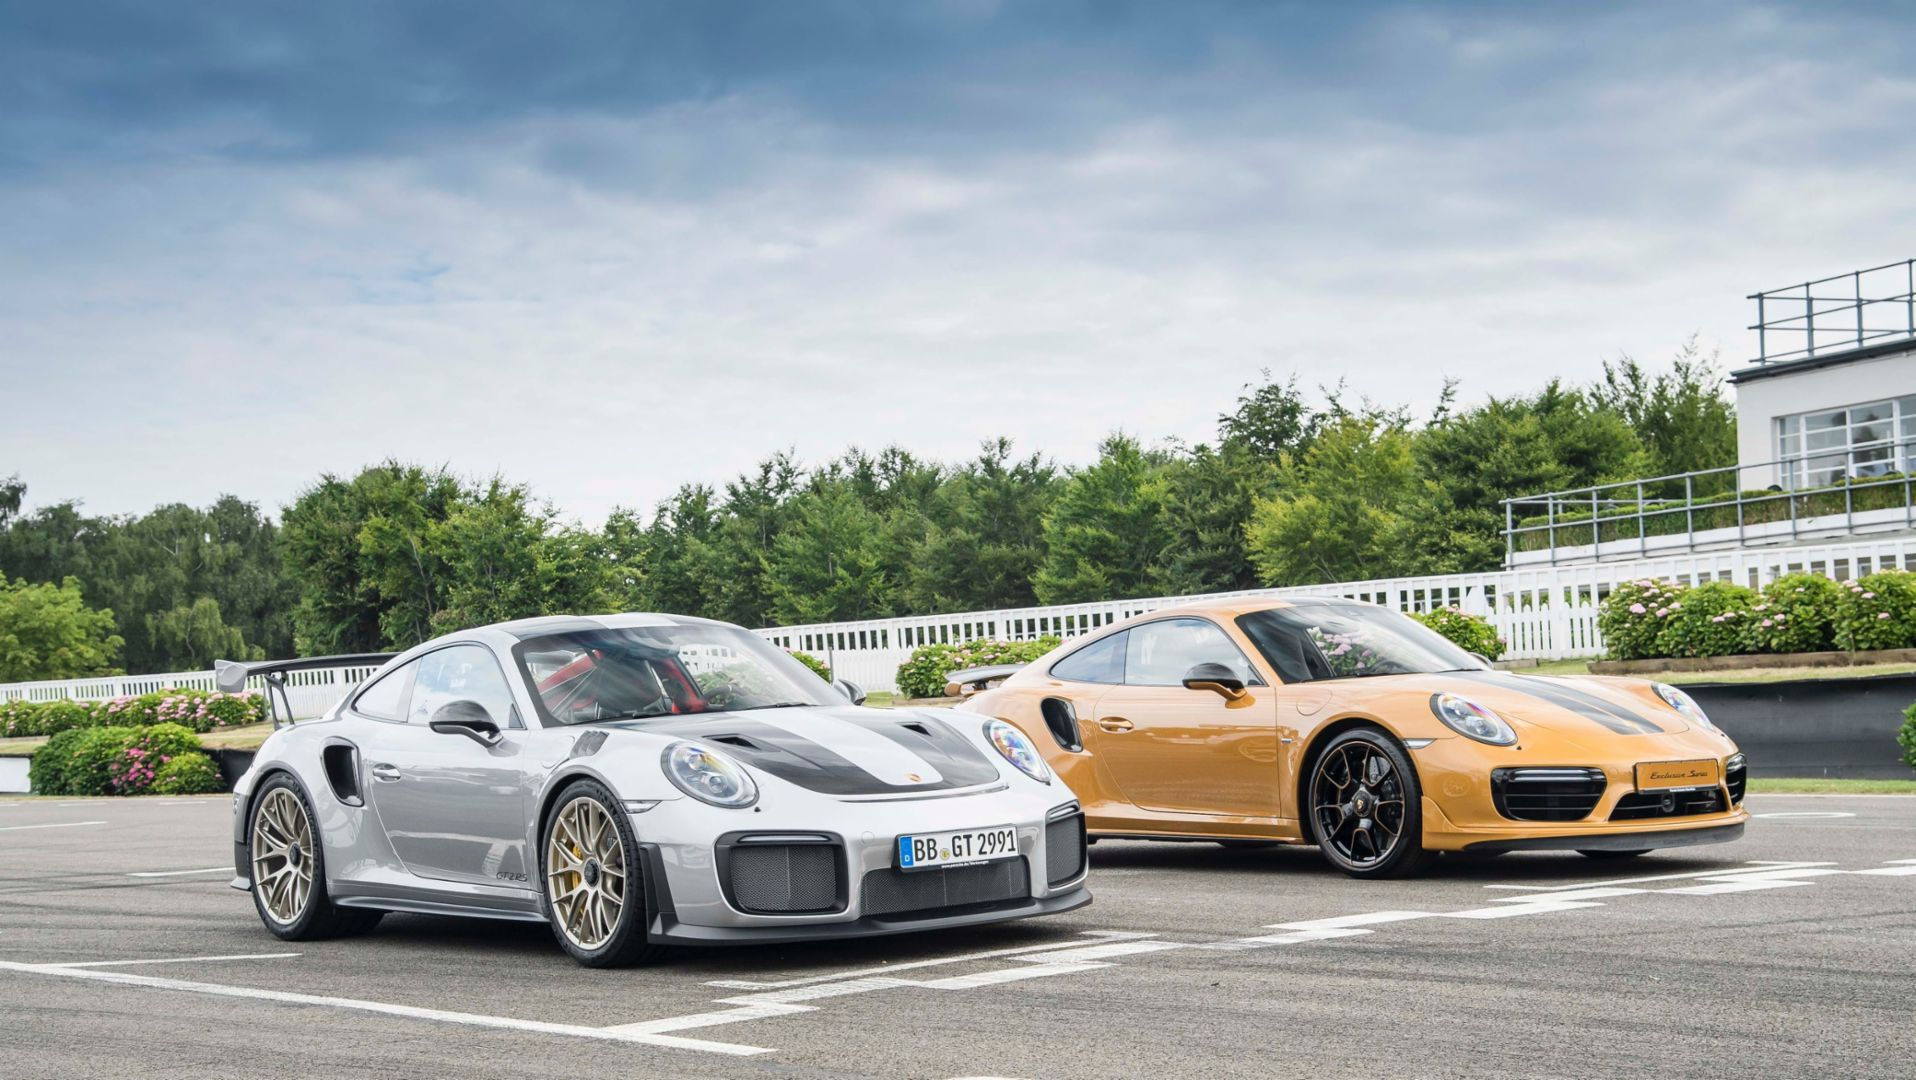 cb9936a0-939f-45a6-a010-363ea772f76d Cozy Porsche 911 Gt2 Rs Turbo Price Cars Trend